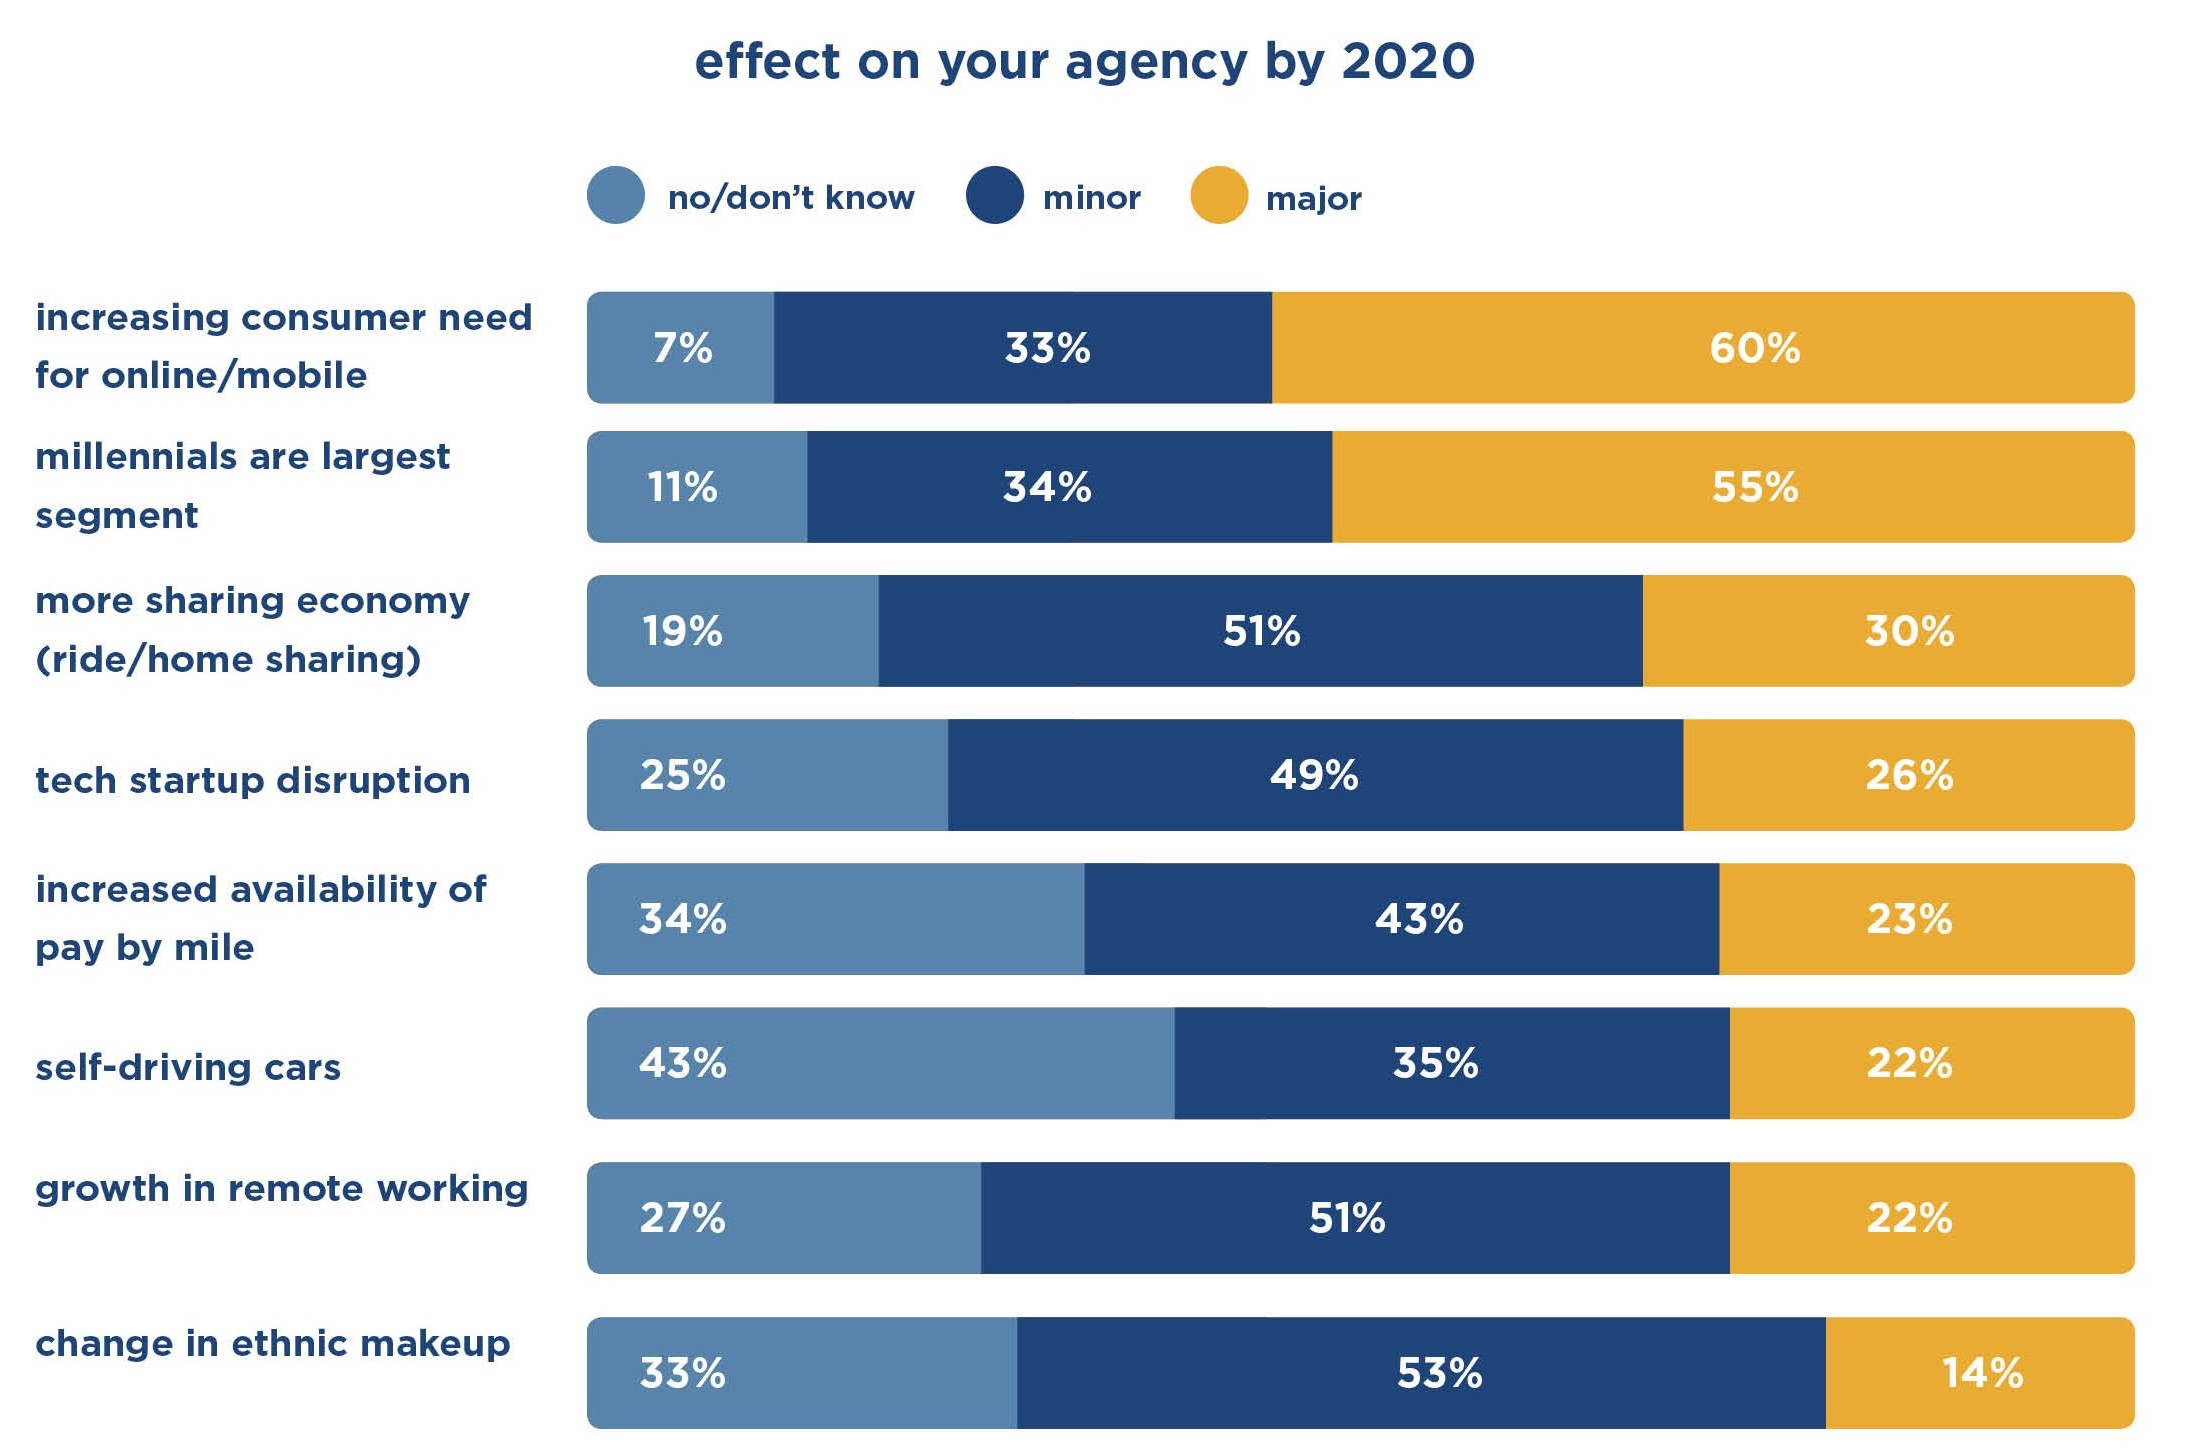 Carrier Poll Shows Many Agents Expect Minor Tech Disruption by